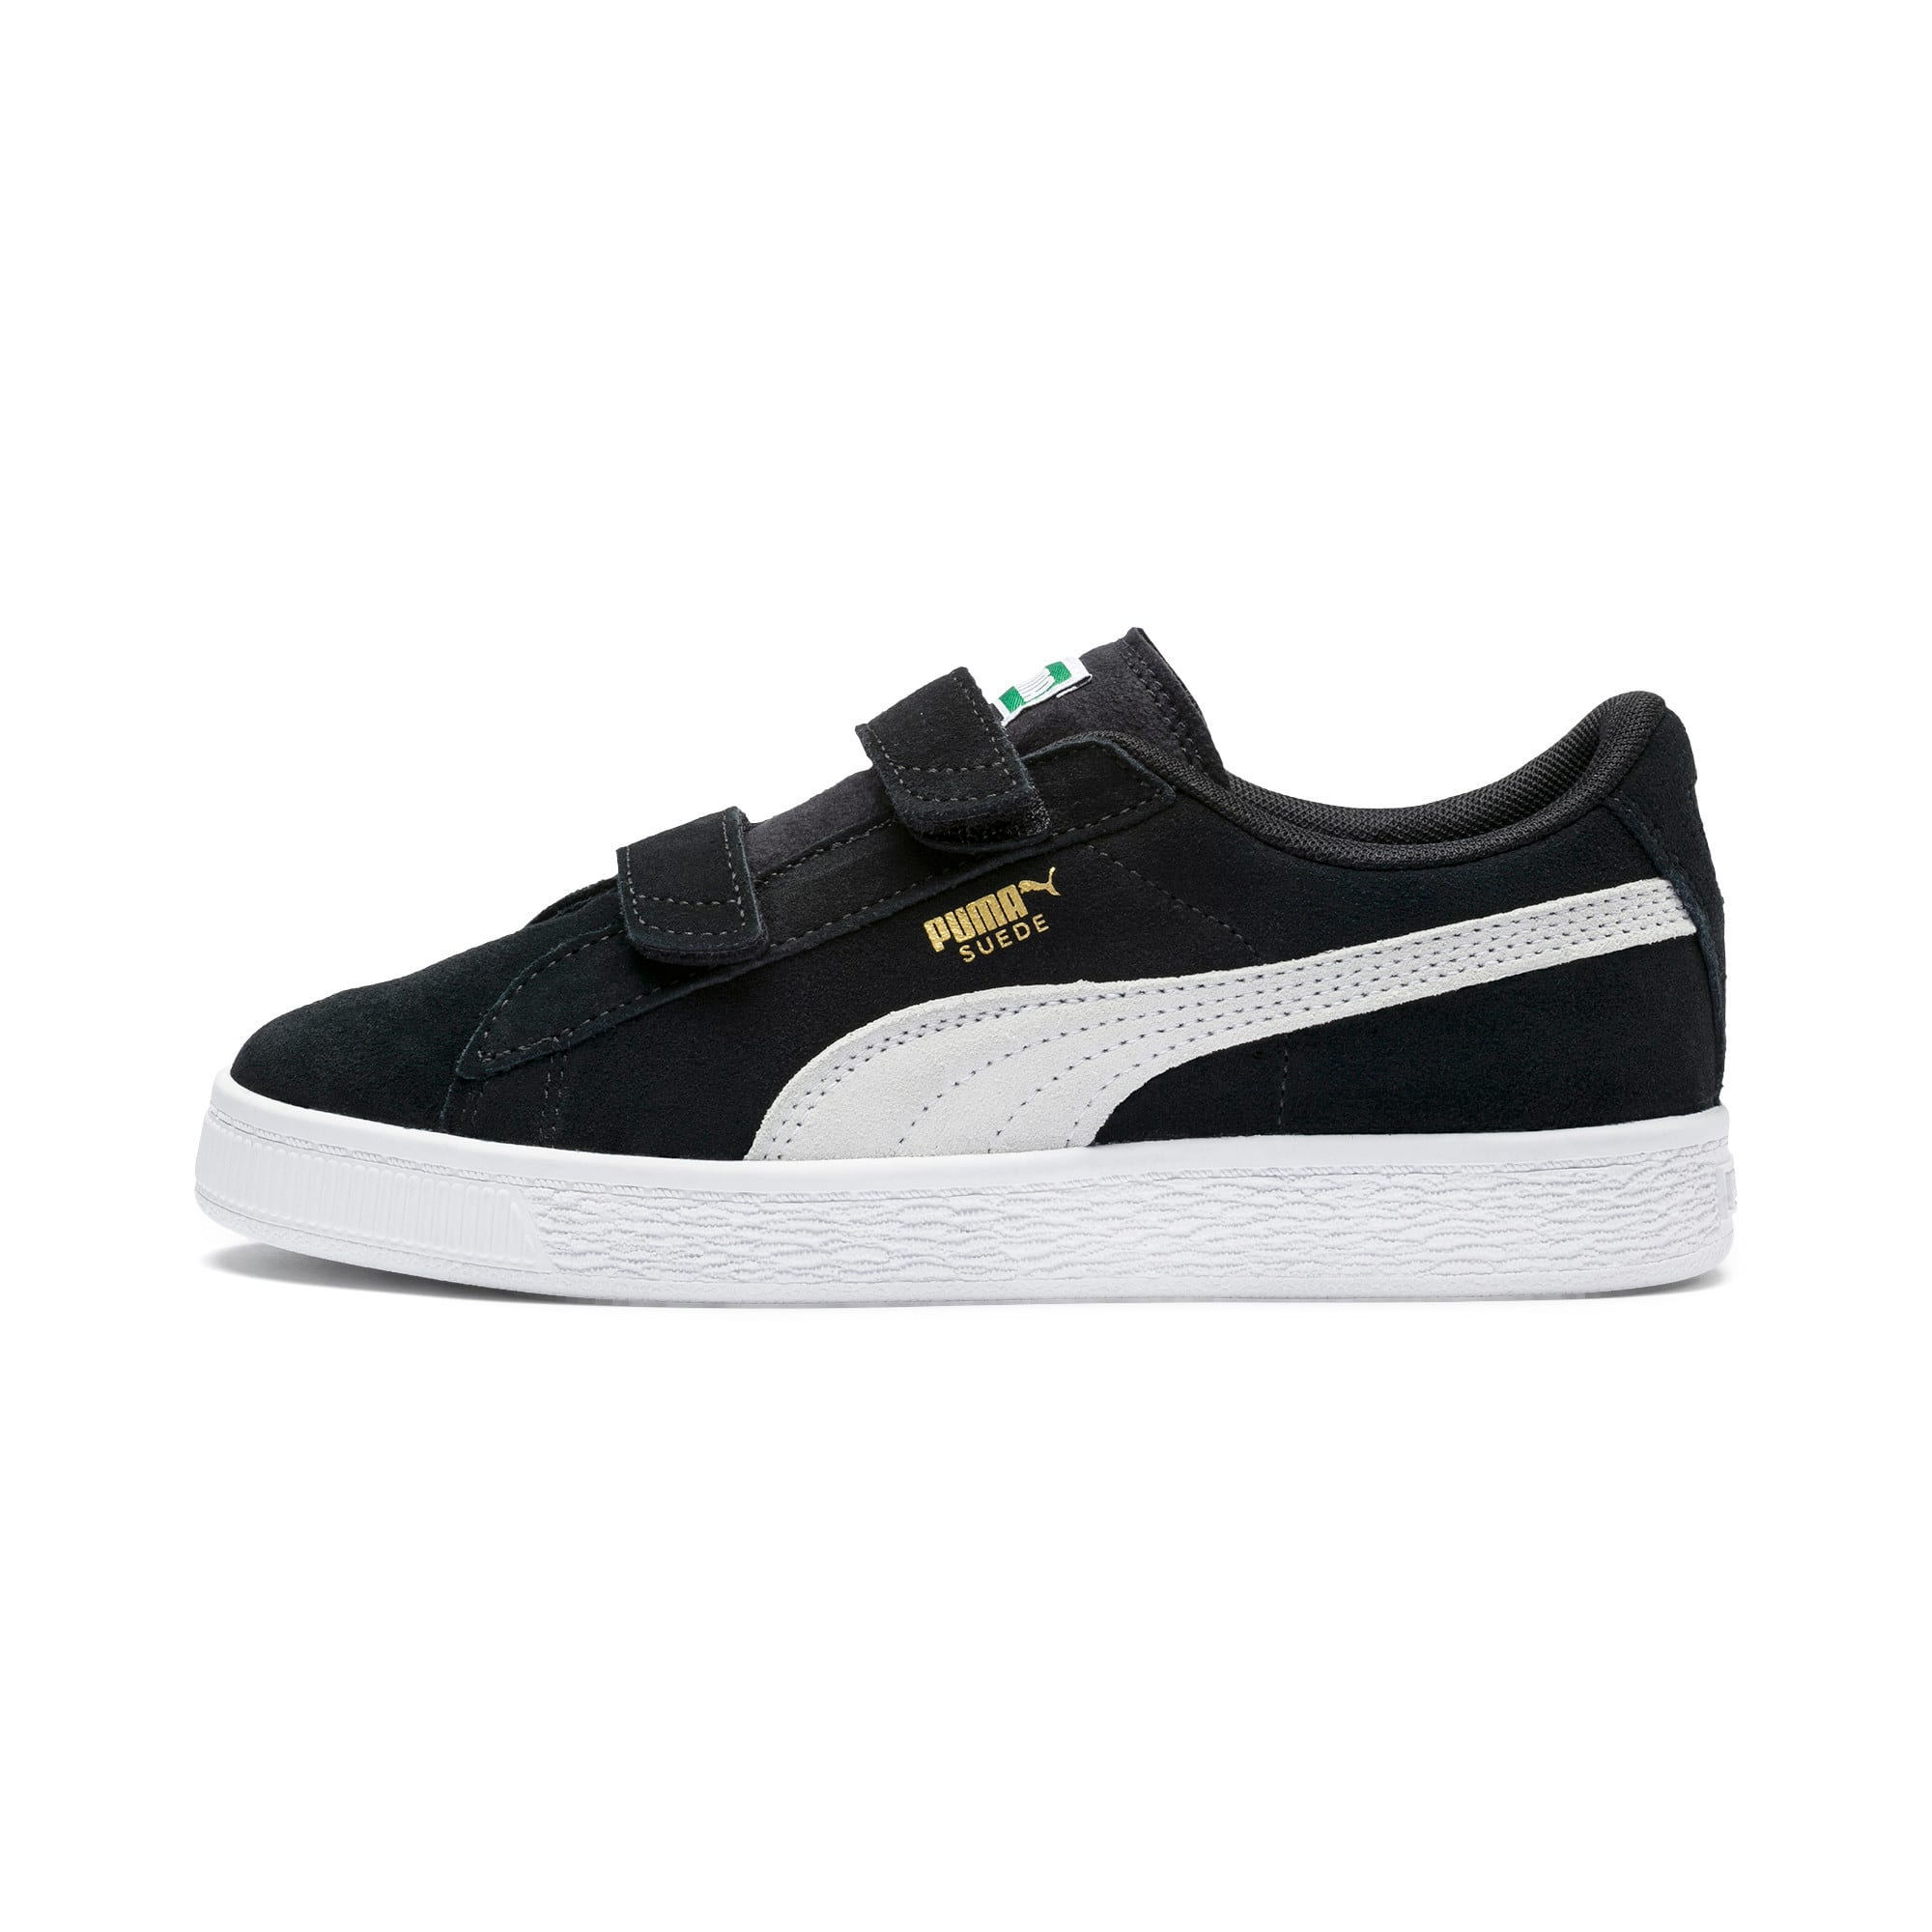 Thumbnail 1 of Suede sneakers voor kinderen, Puma Black-Puma White, medium